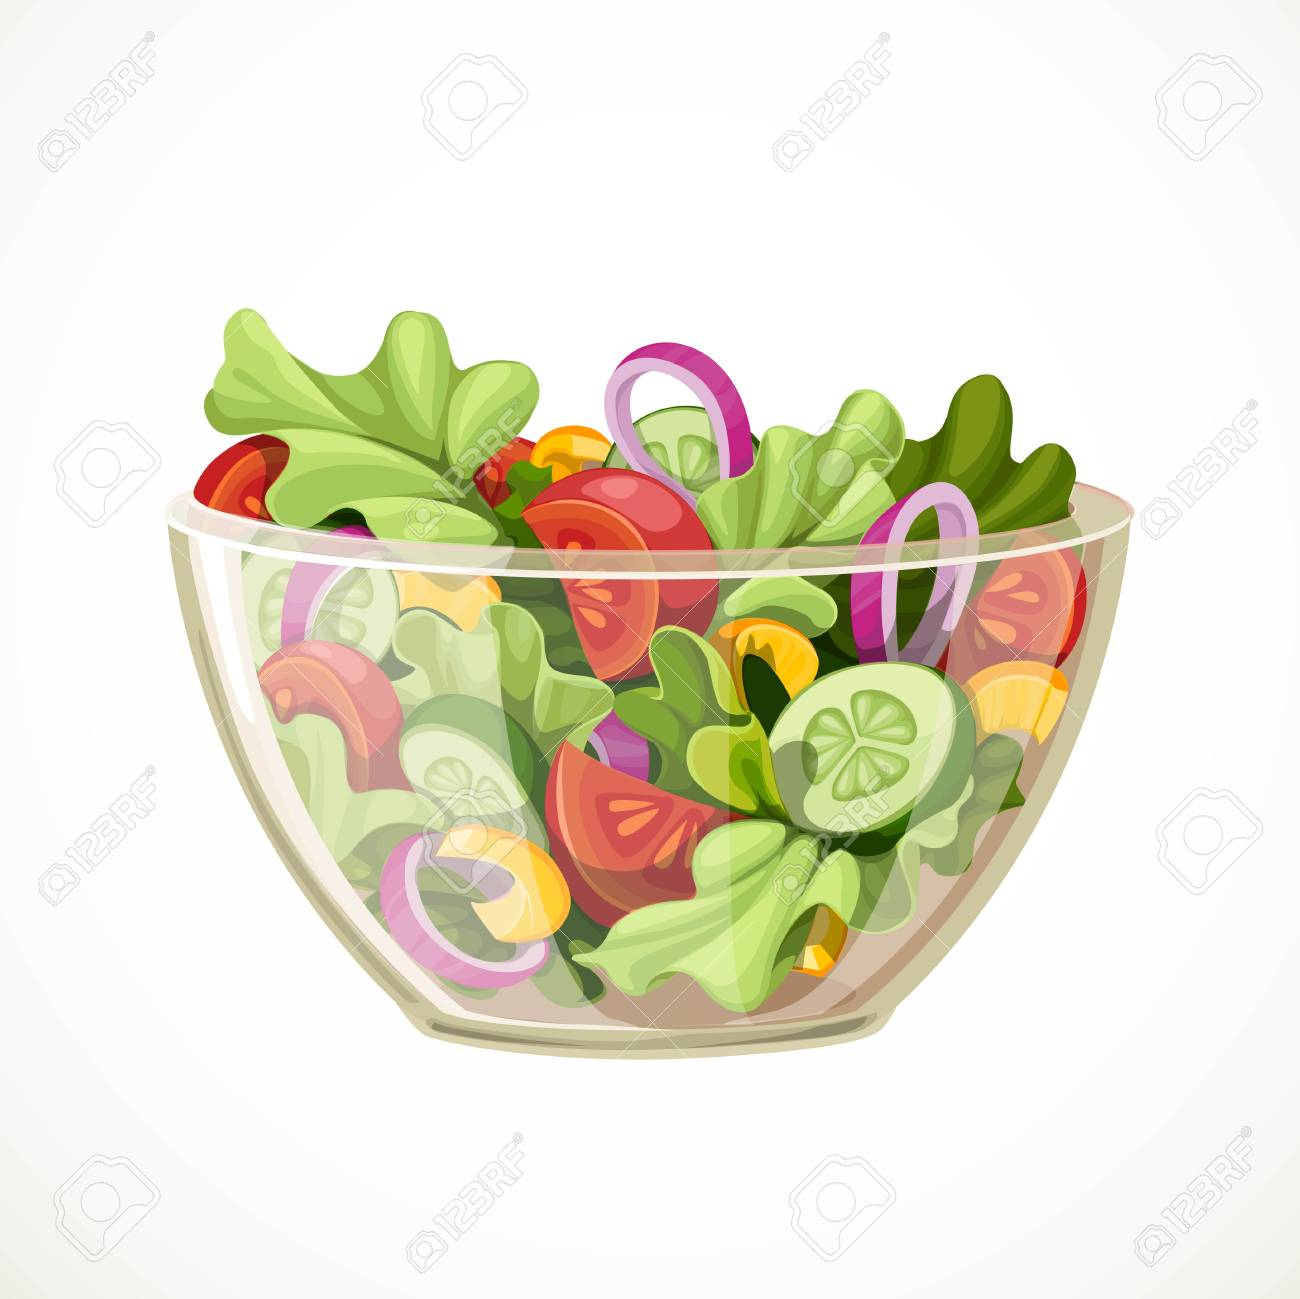 green salad of fresh vegetables in a transparent salad bowl object royalty free cliparts vectors and stock illustration image 96990392 green salad of fresh vegetables in a transparent salad bowl object royalty free cliparts vectors and stock illustration image 96990392